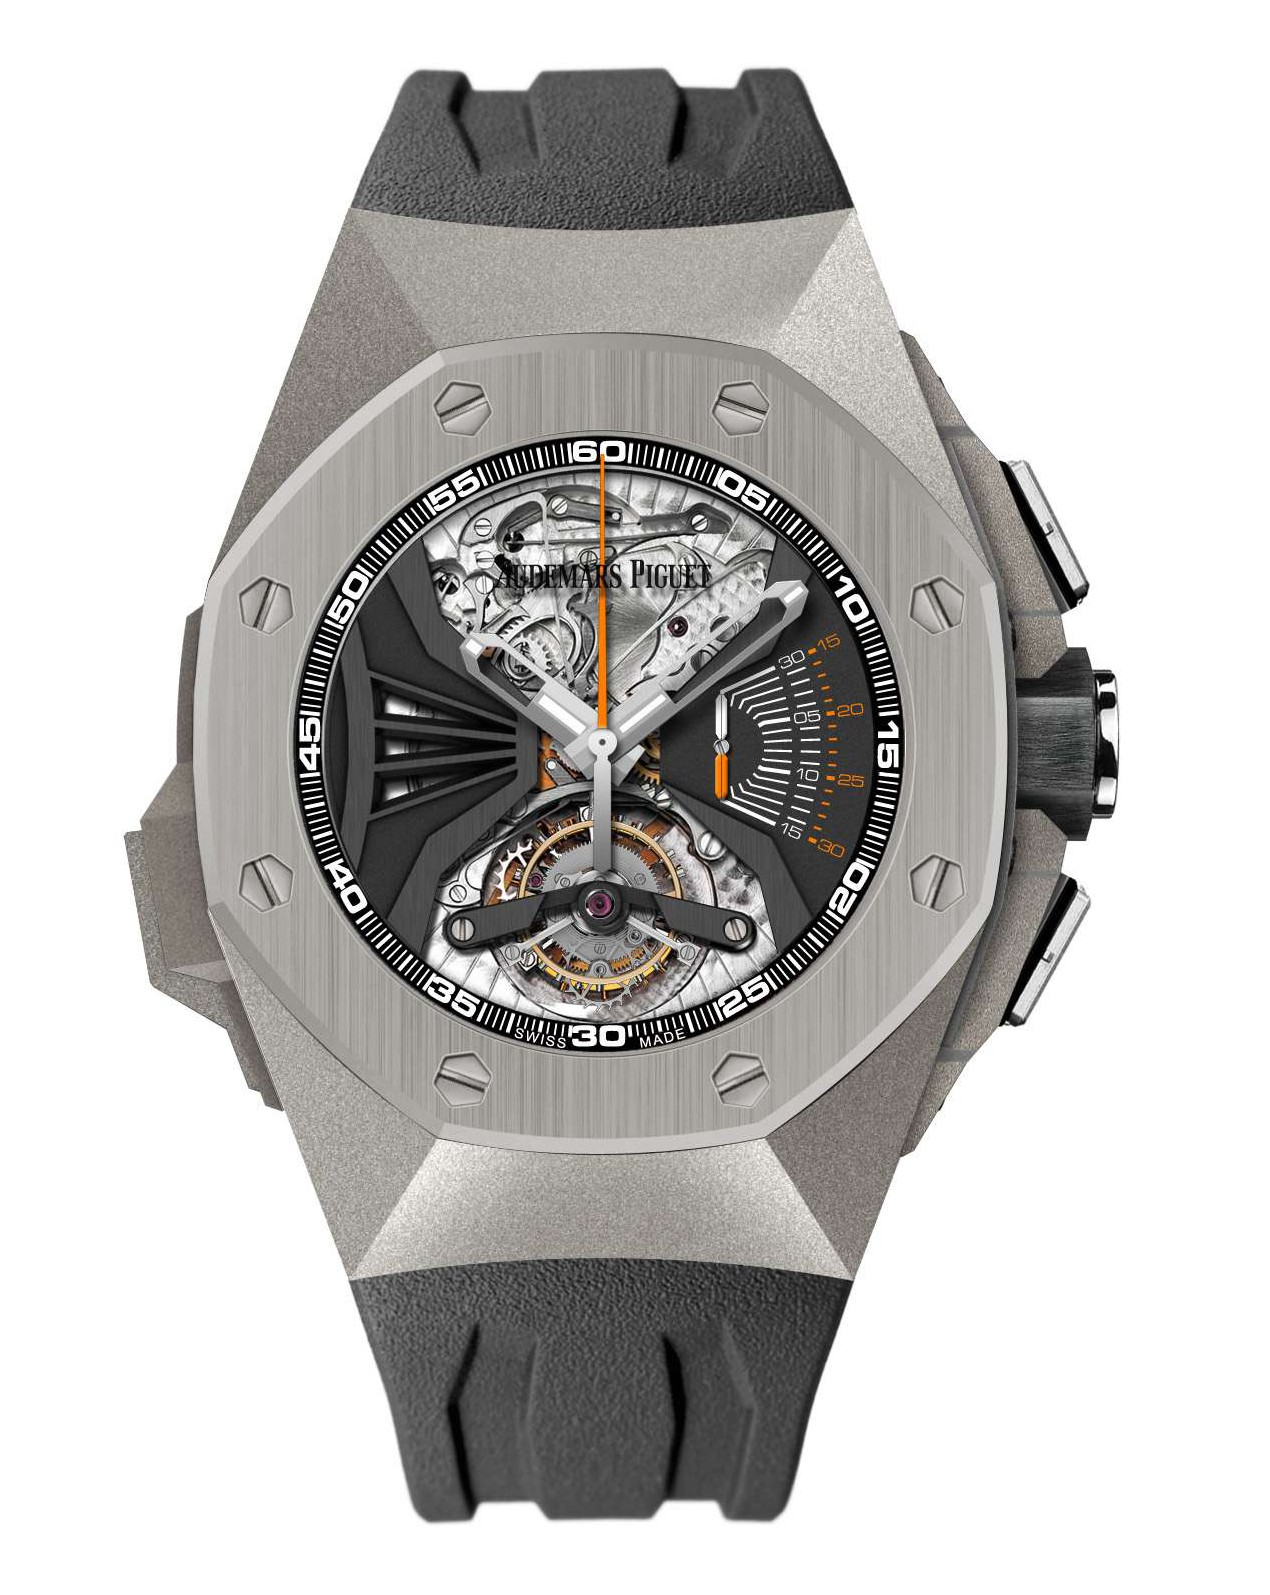 Audemars Piguet_SIHH_Acoustic Research_2015_Original-2000